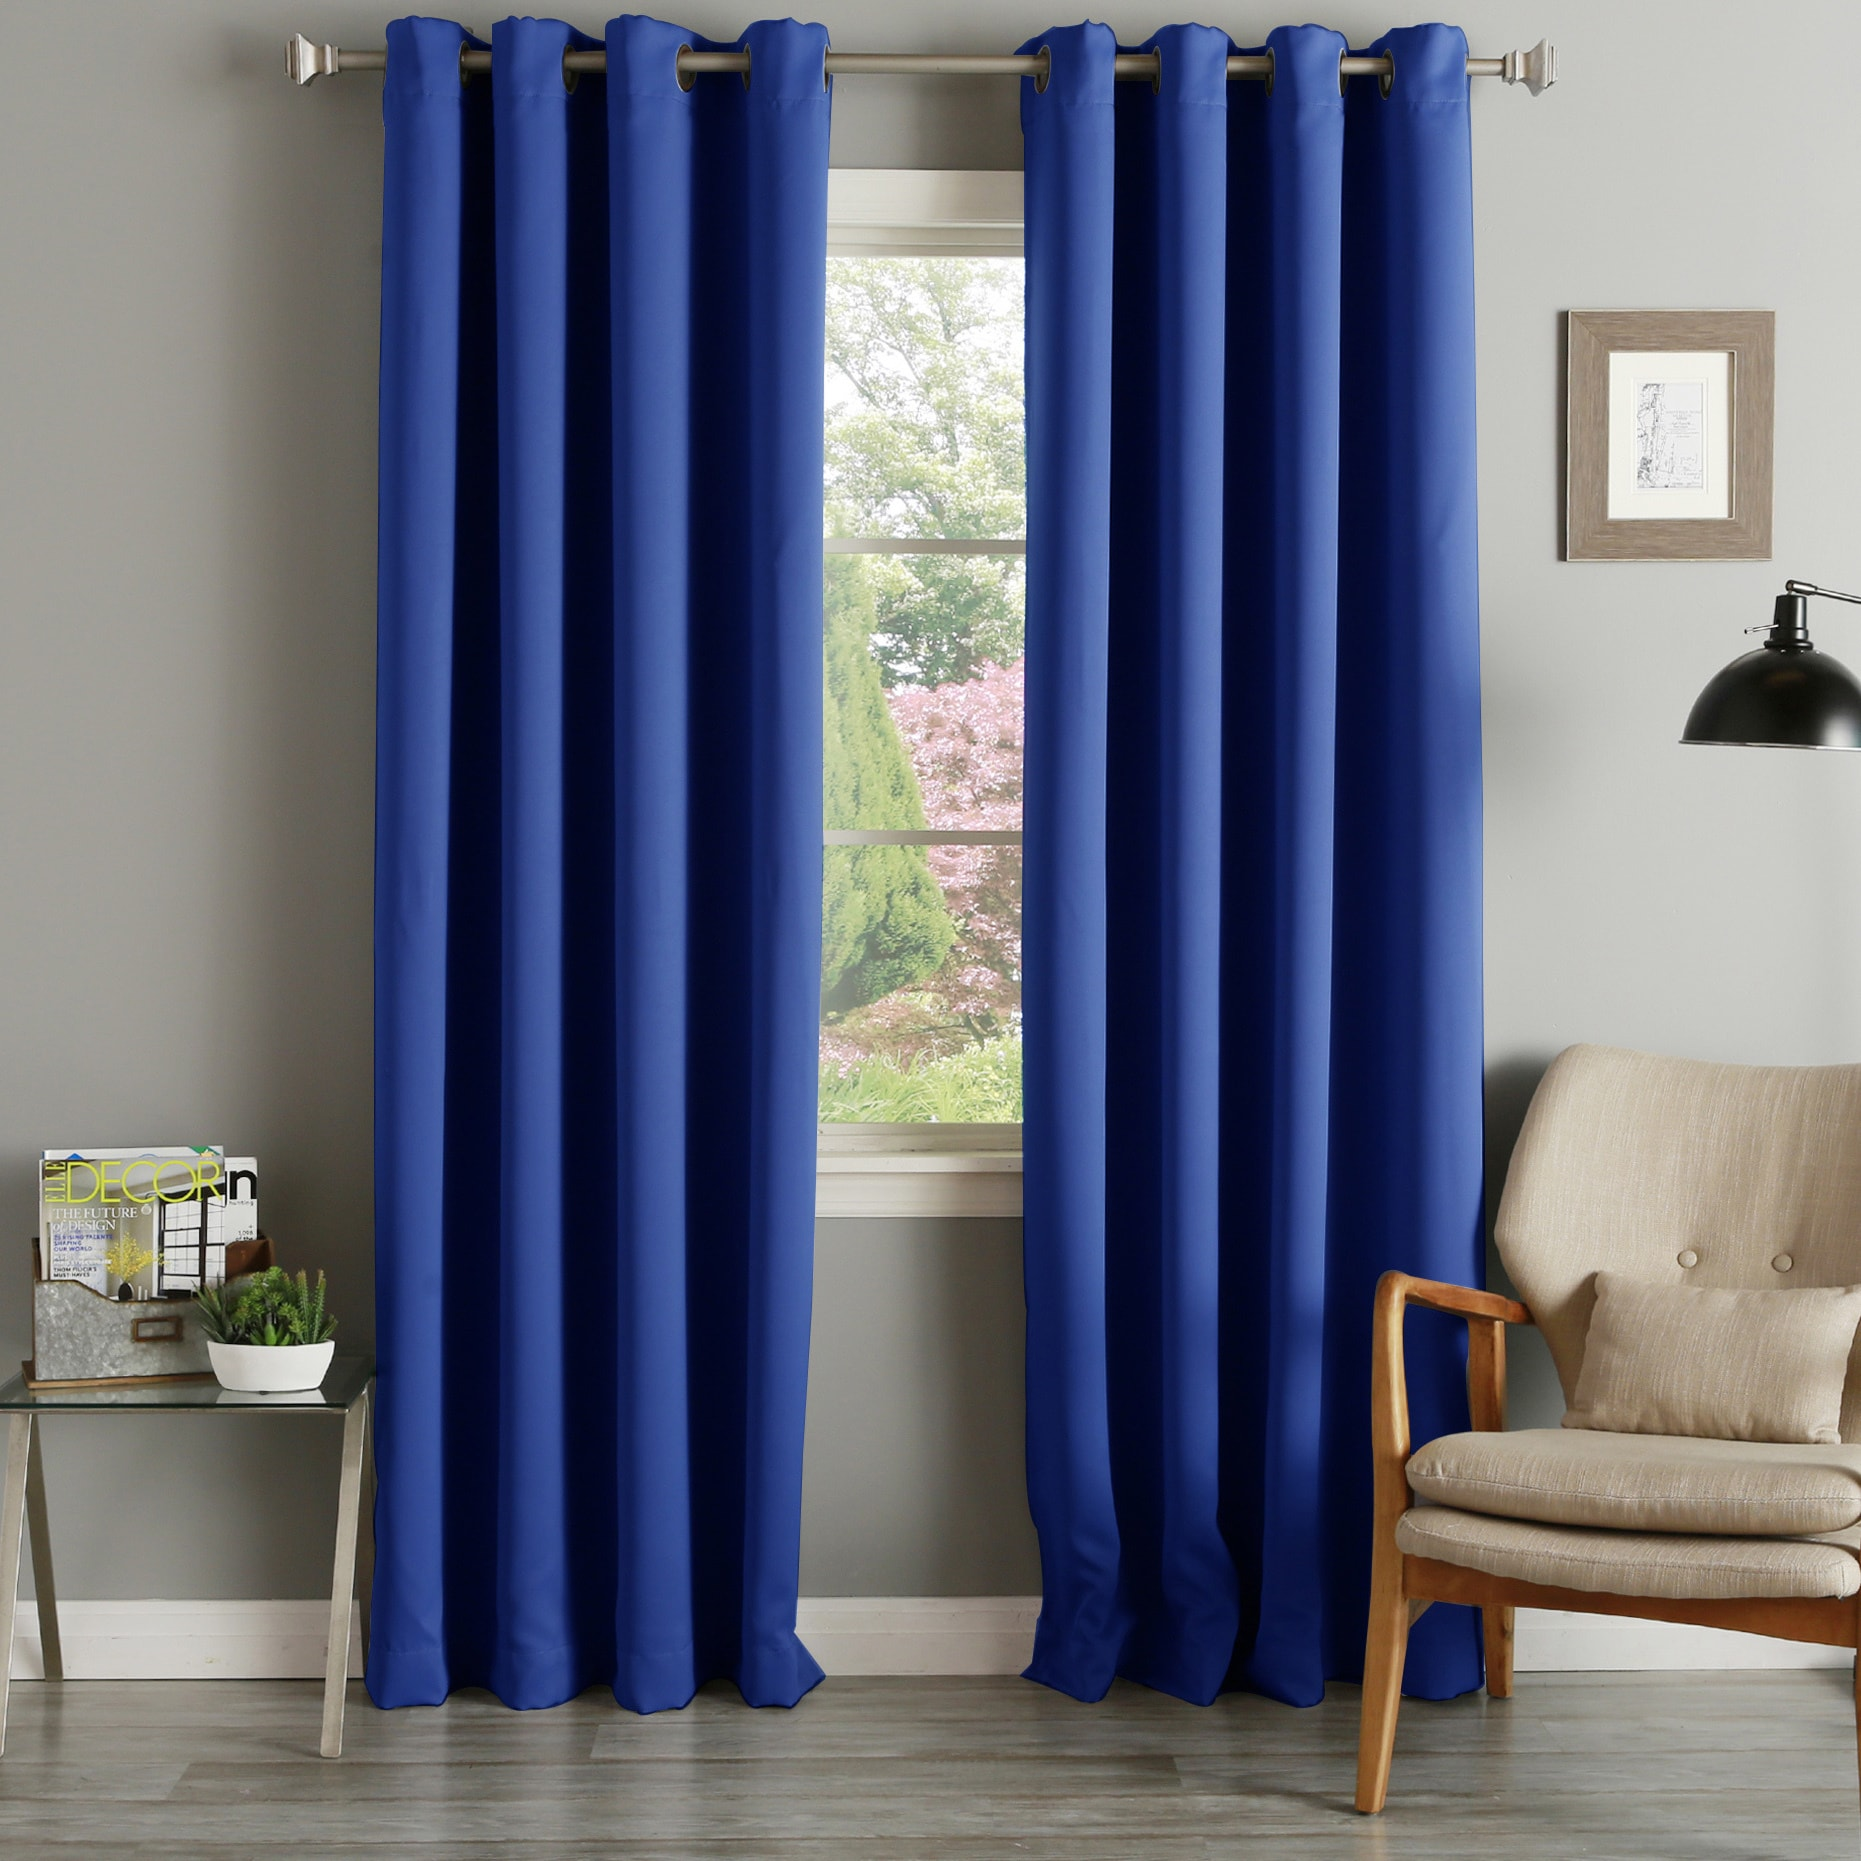 curtains to of photos pertaining insulation featured amcraft image thermal industrial ideas curtain insulated